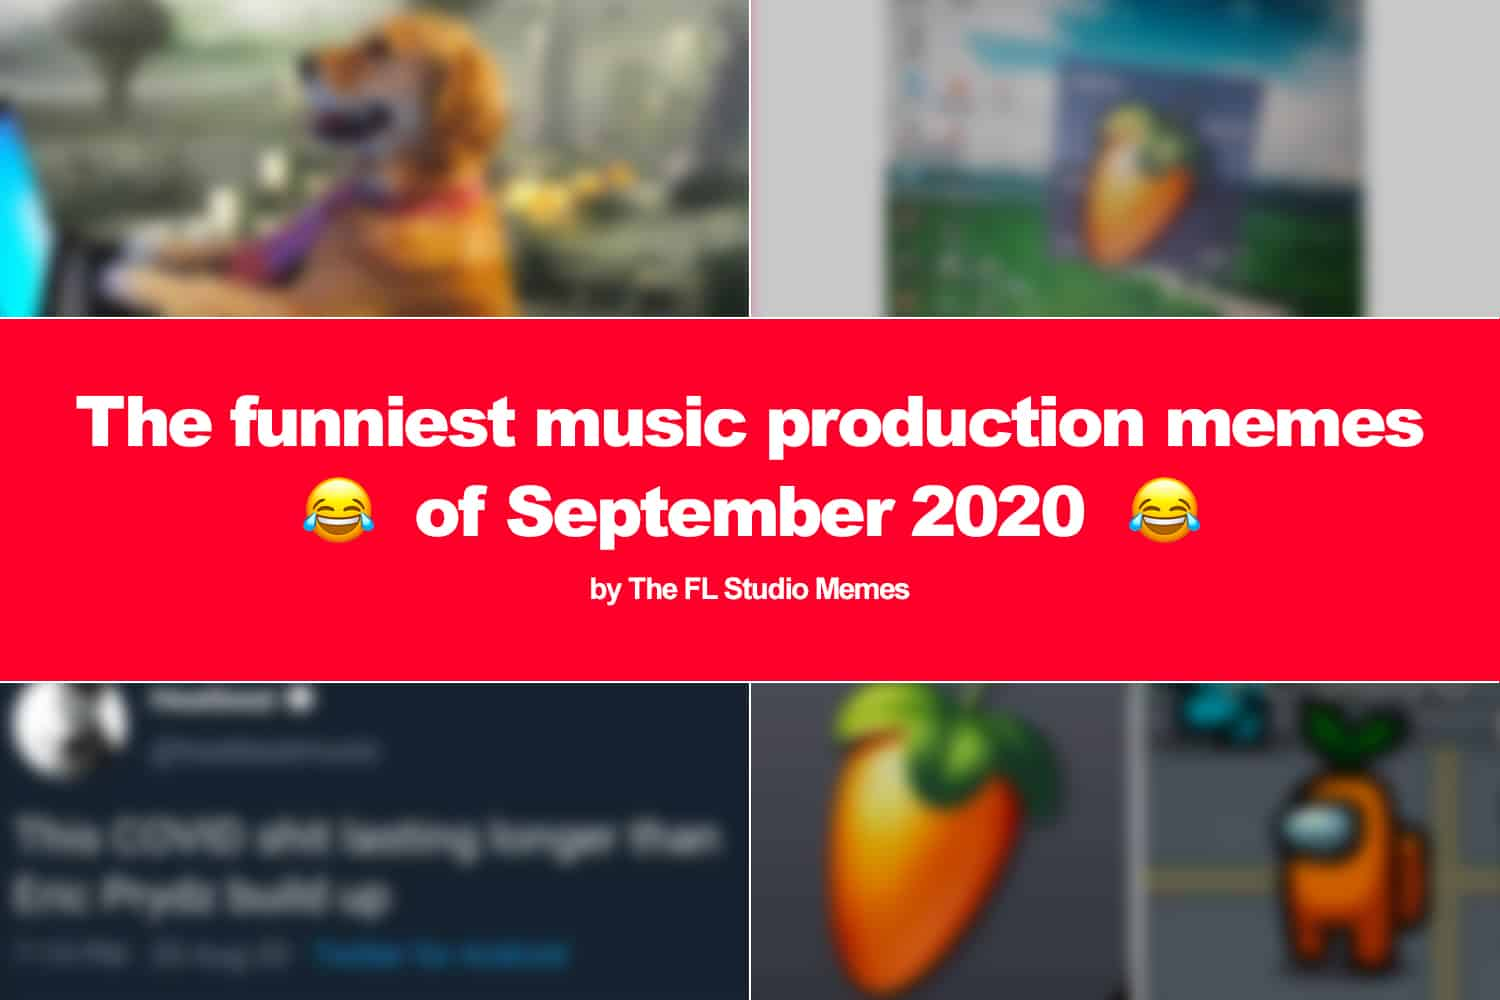 The funniest music production memes